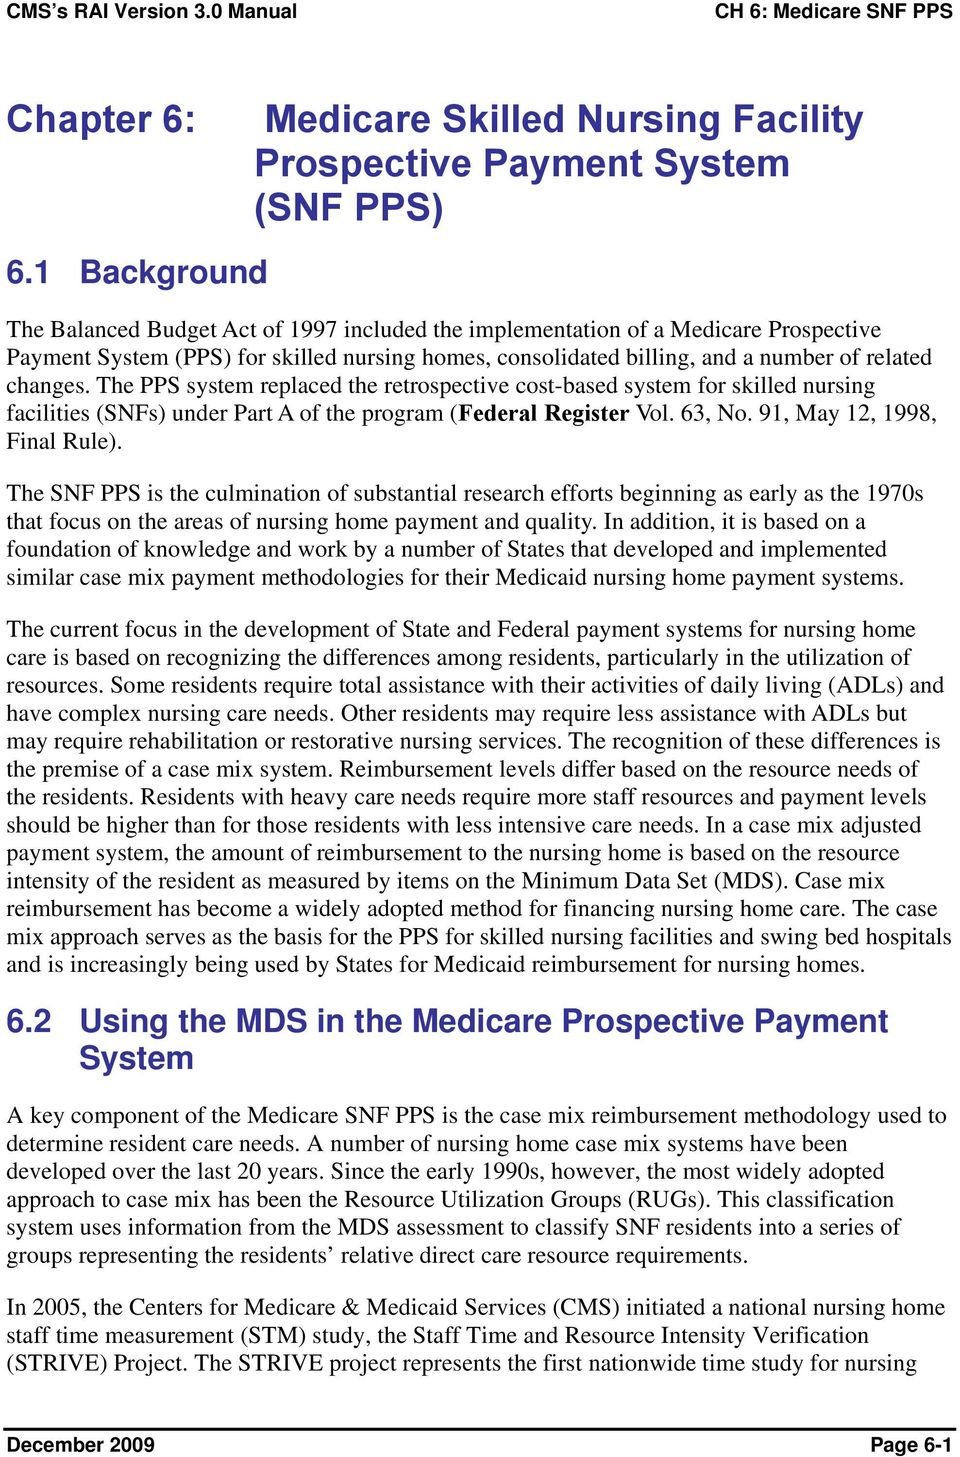 changes. The PPS system replaced the retrospective cost-based system for skilled nursing facilities (SNFs) under Part A of the program (Federal Register Vol. 63, No. 91, May 12, 1998, Final Rule).